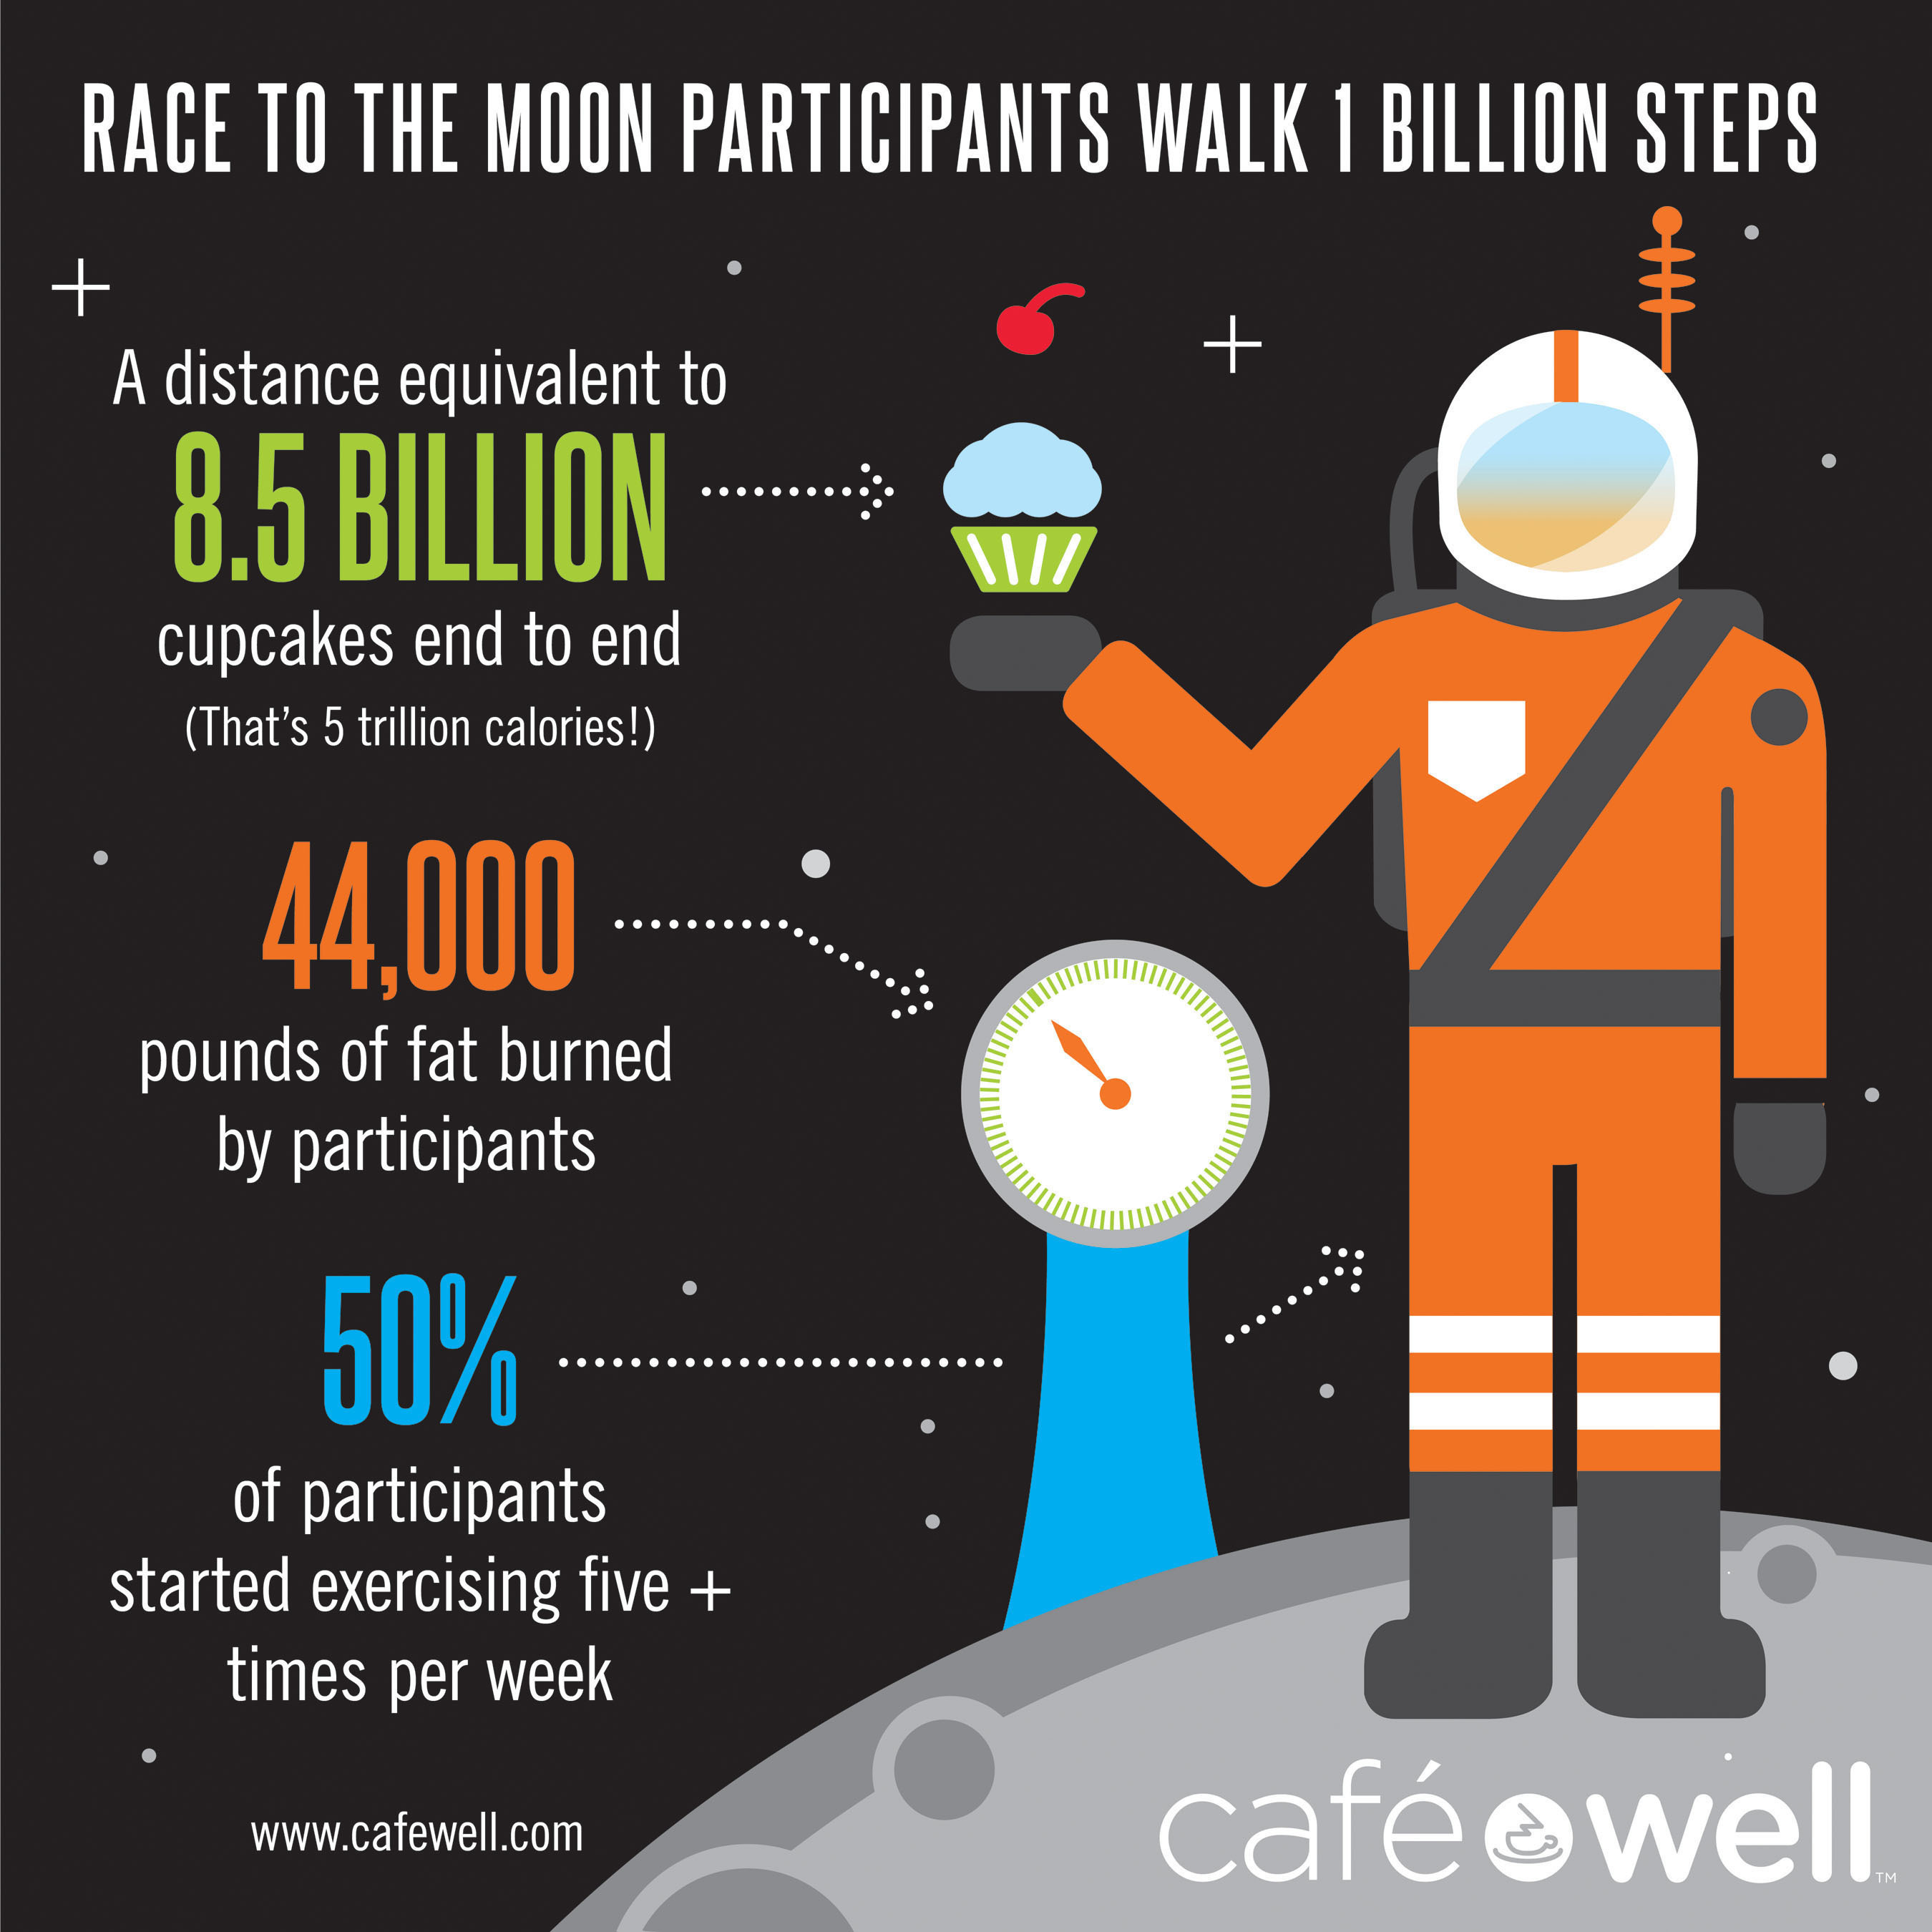 Over 1 Billion Stepped in CafeWell and HealthAmerica's Race to the Moon